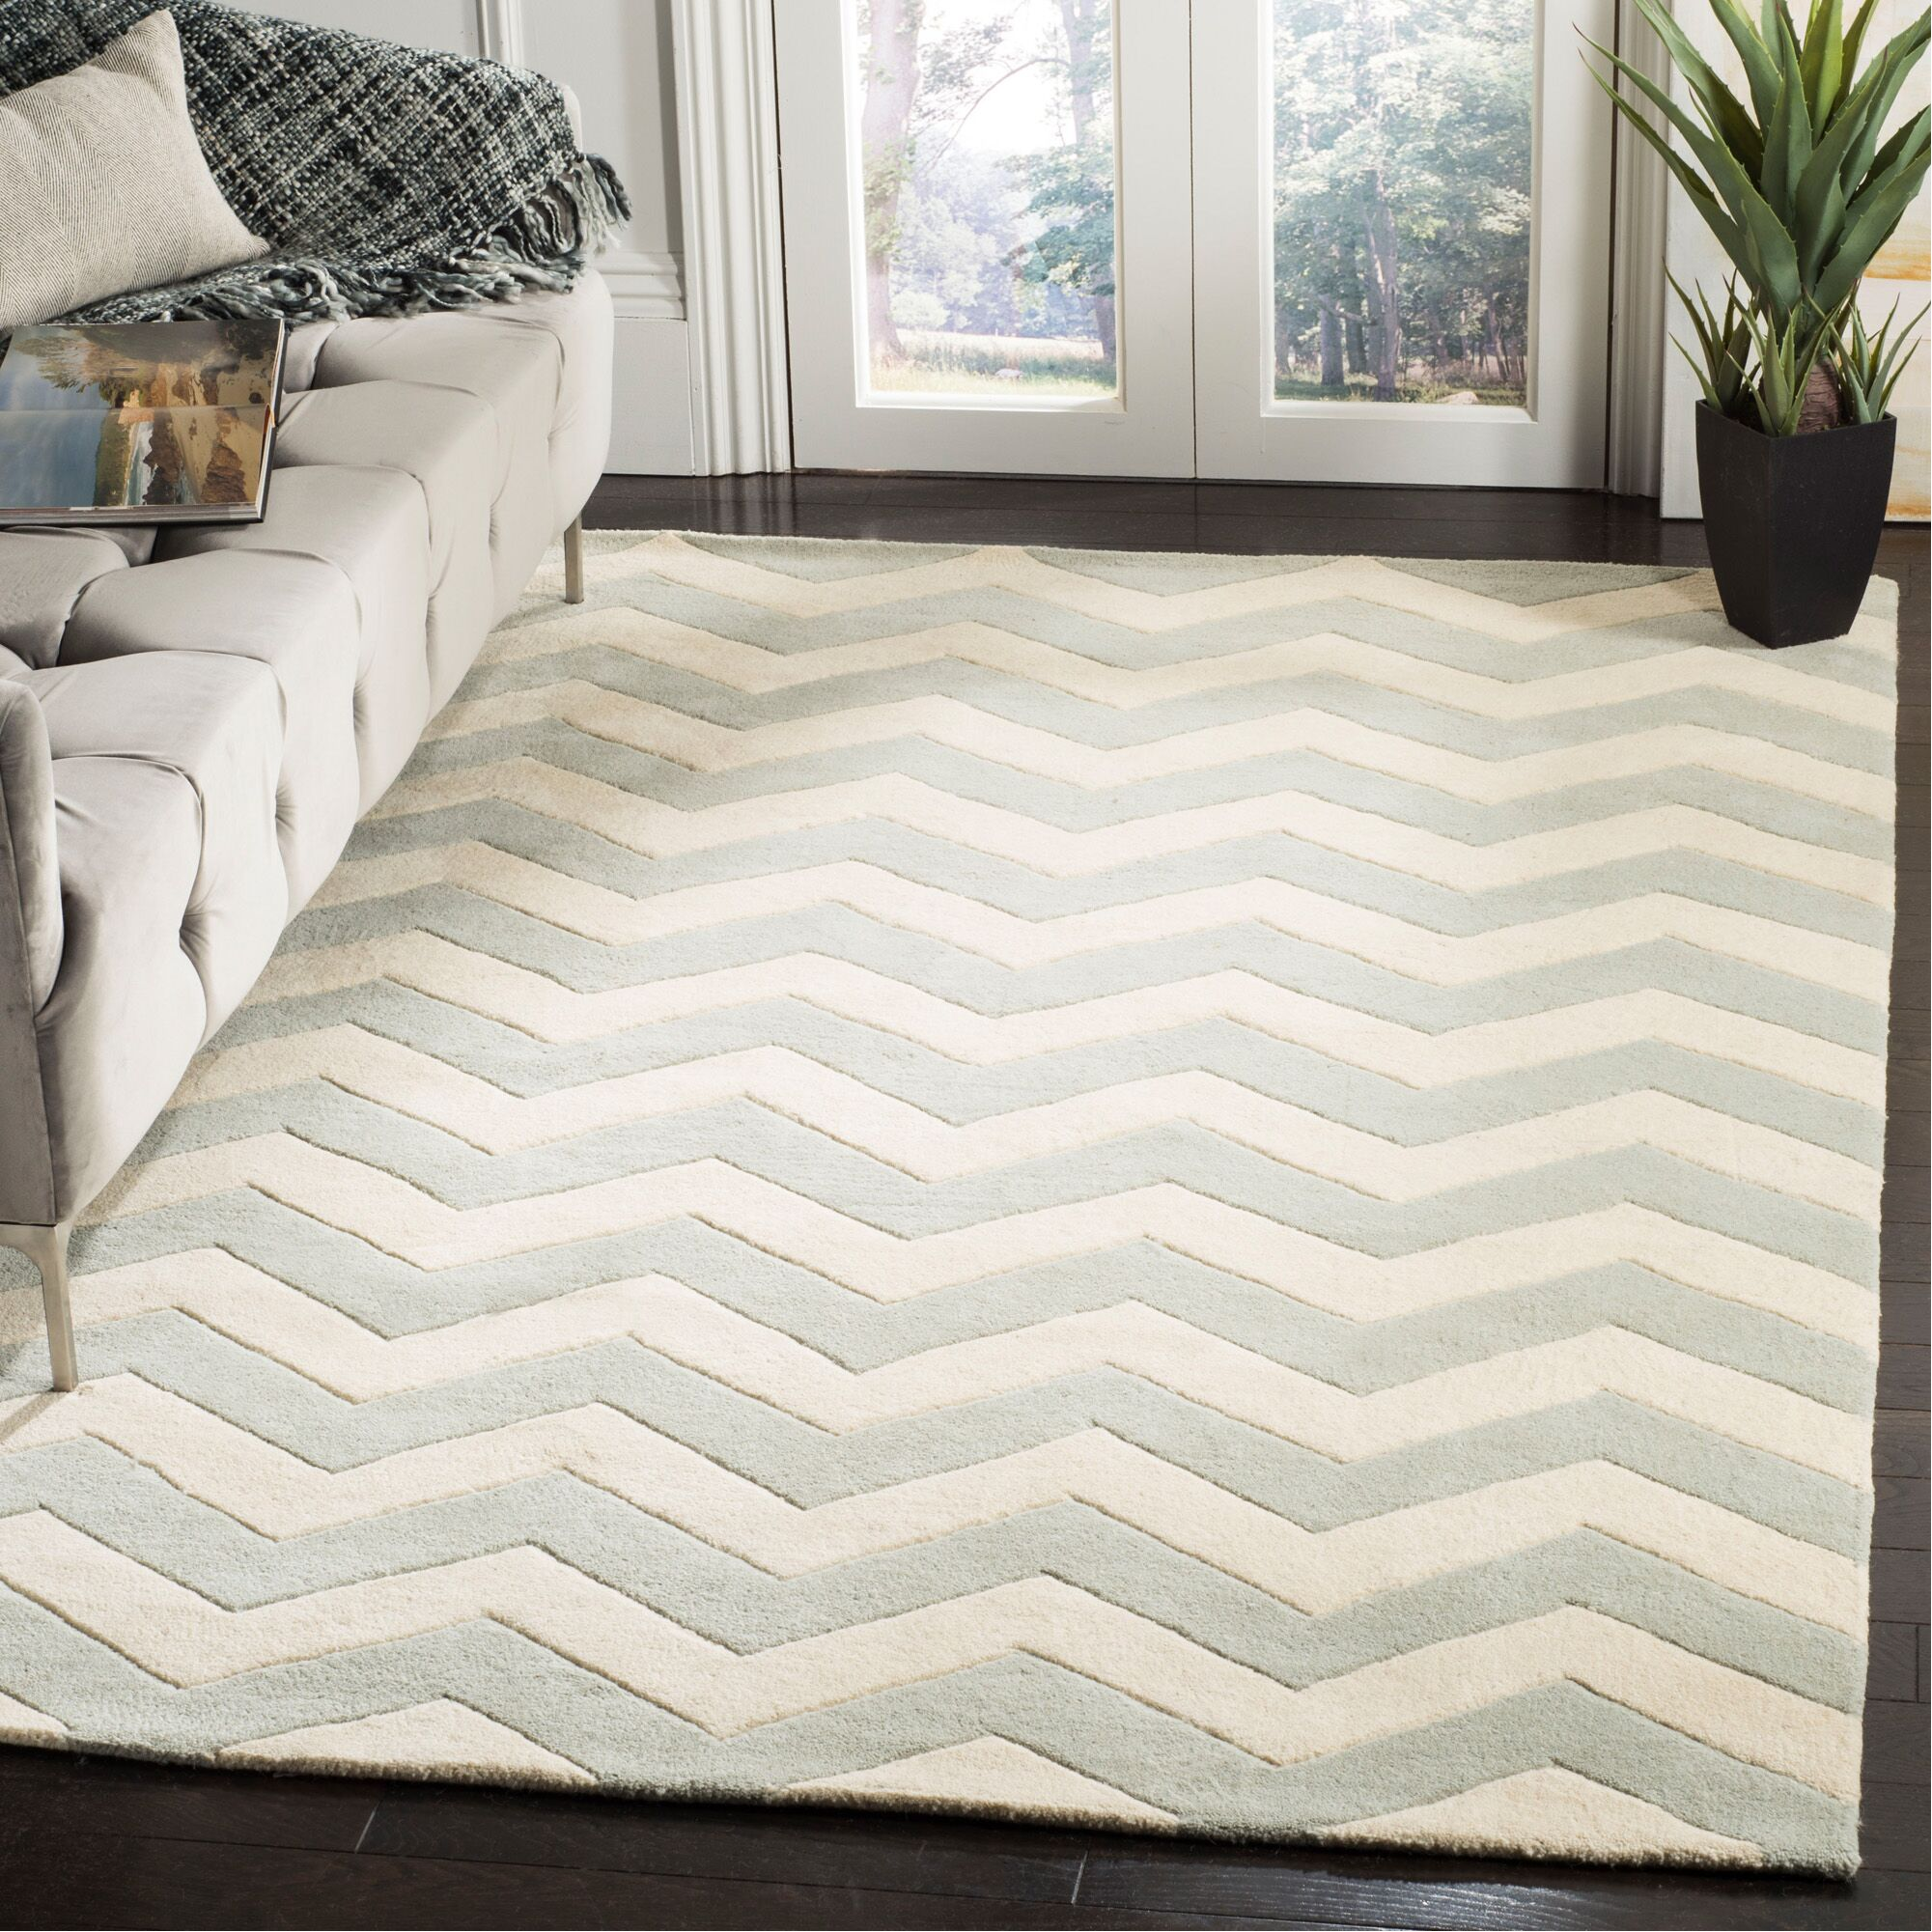 Wilkin Chevron Hand-Tufted Wool Gray/Ivory Area Rug Rug Size: Rectangle 5' x 8'